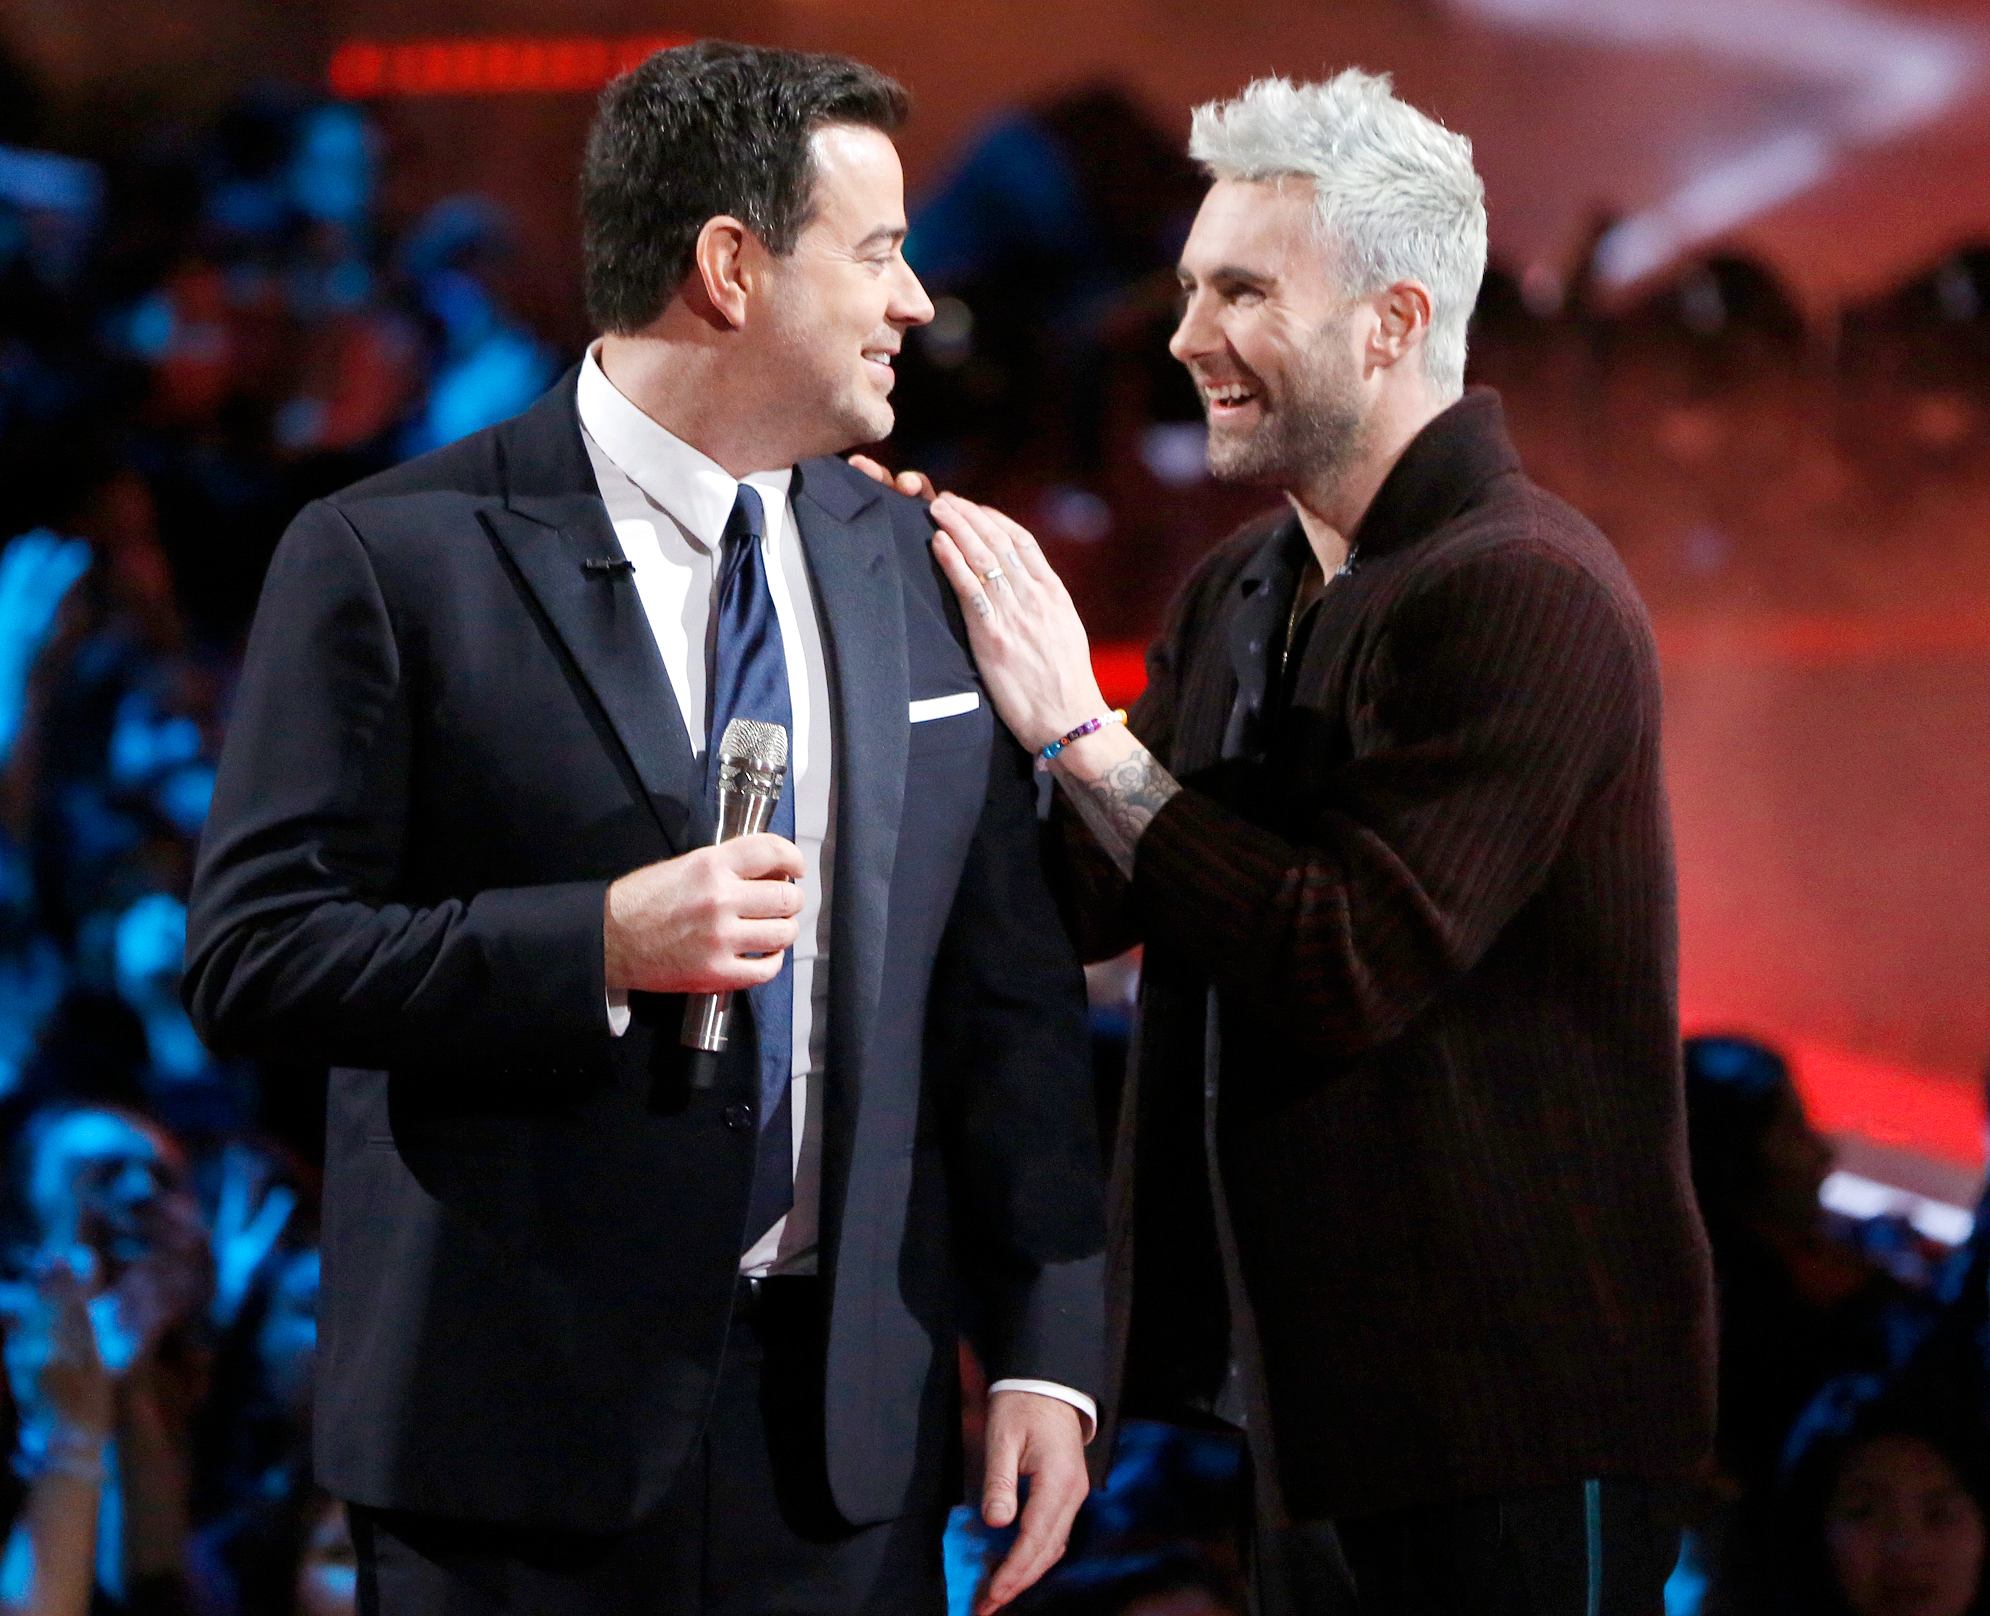 """Carson-Daly,-Adam-Levine - The Voice host, who has been on the series since it premiered in 2011, spoke about Levine's departure on Friday's episode of the Today show. """"After 16 seasons, Adam Levine, our beloved coach and friend, has decided to leave The Voice,"""" the TRL alum said."""